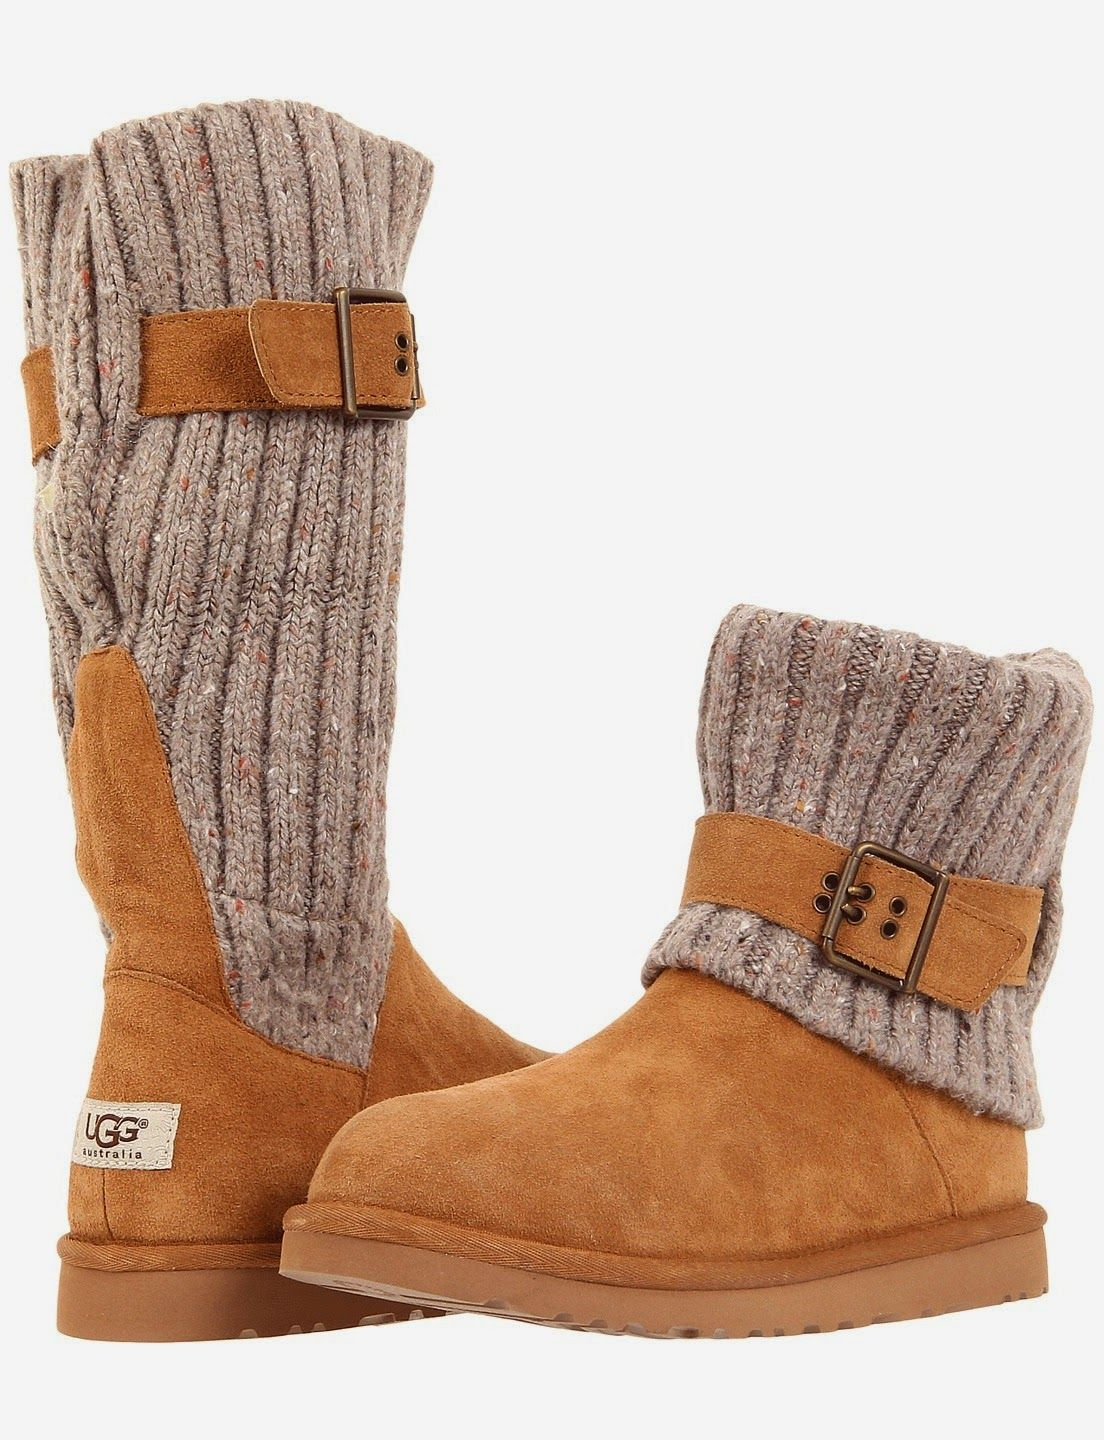 c9a87bbd006 Womens UGG Cambridge Comfy Shoes | Shoes!!! | Shoes, Fashion, Uggs ...